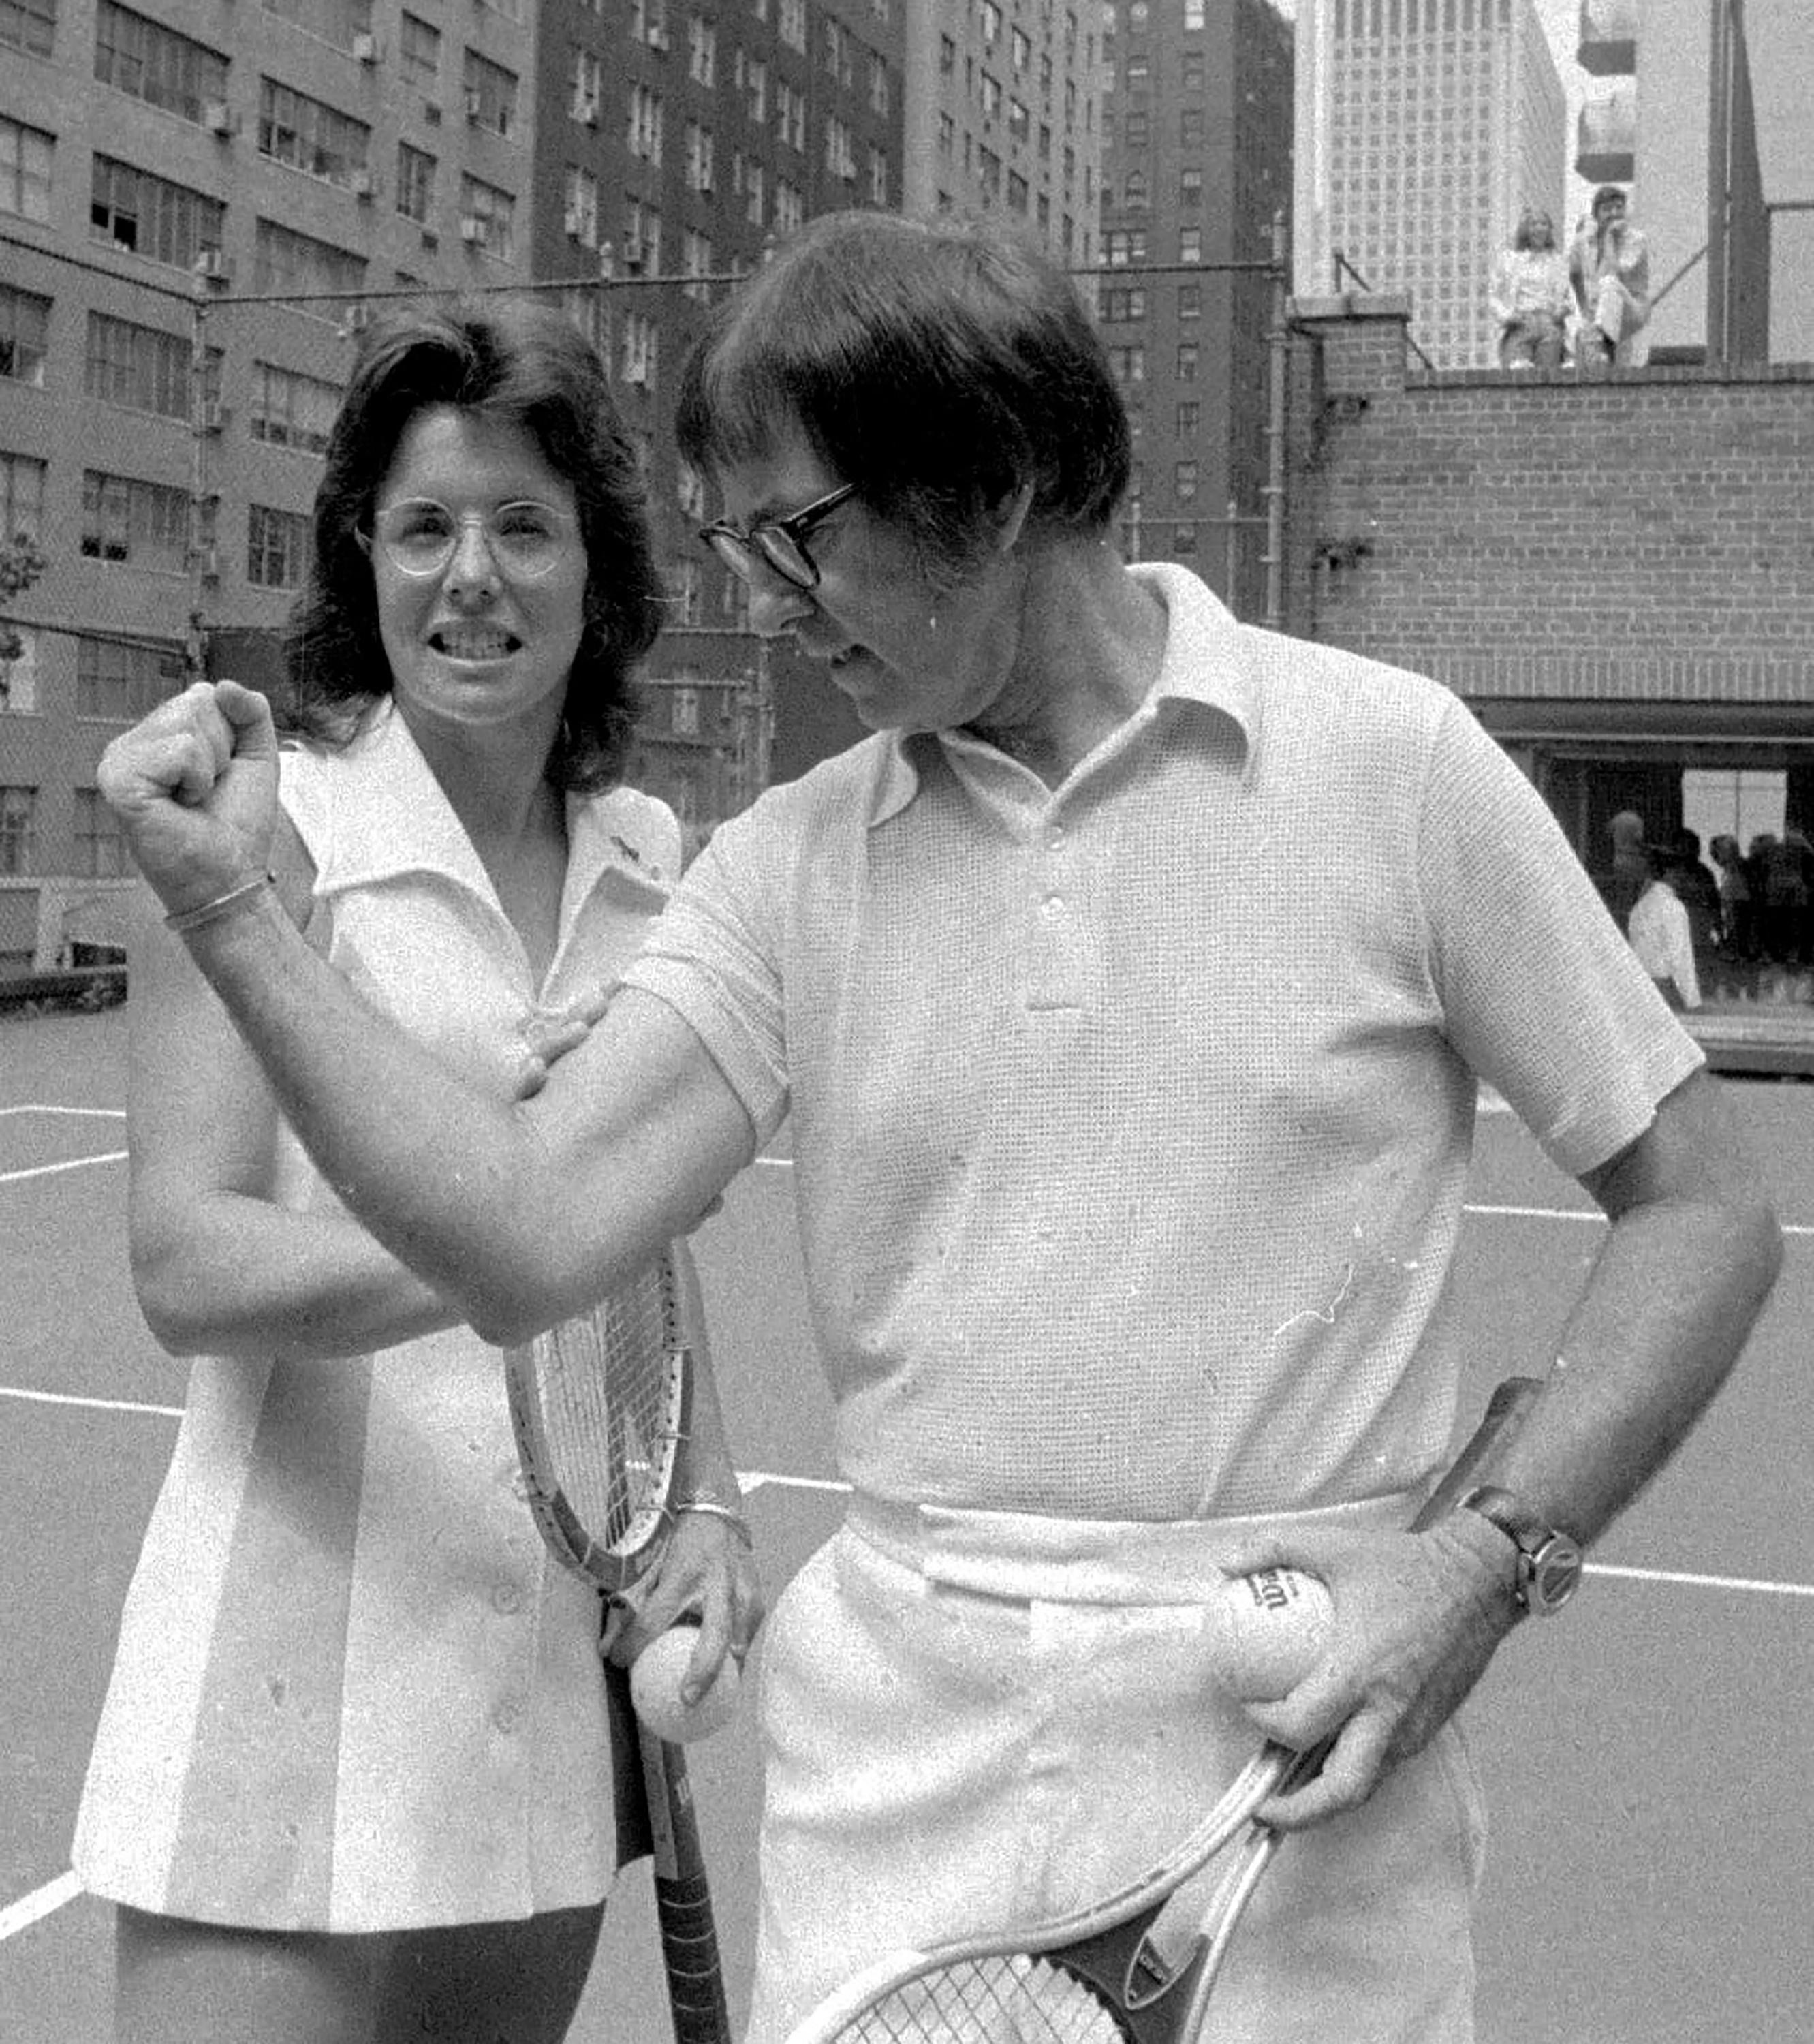 """FILE - Undated B/W file photo Bobby Riggs poses for Billie Jean King. King won 12 Grand Slam singles titles, including six at Wimbledon, but her most famous match came in 1973 when she beat 55-year-old Bobby Riggs 6-4, 6-3, 6-3 in the """"Battle of the Sexes."""" The Fed Cup is changing its name to honour tennis great Billie Jean King, becoming The Billie Jean King Cup, the first major global team competition to be named after a woman, it is announced Thursday Sept. 17, 2020. (AP Photo, FILE)"""